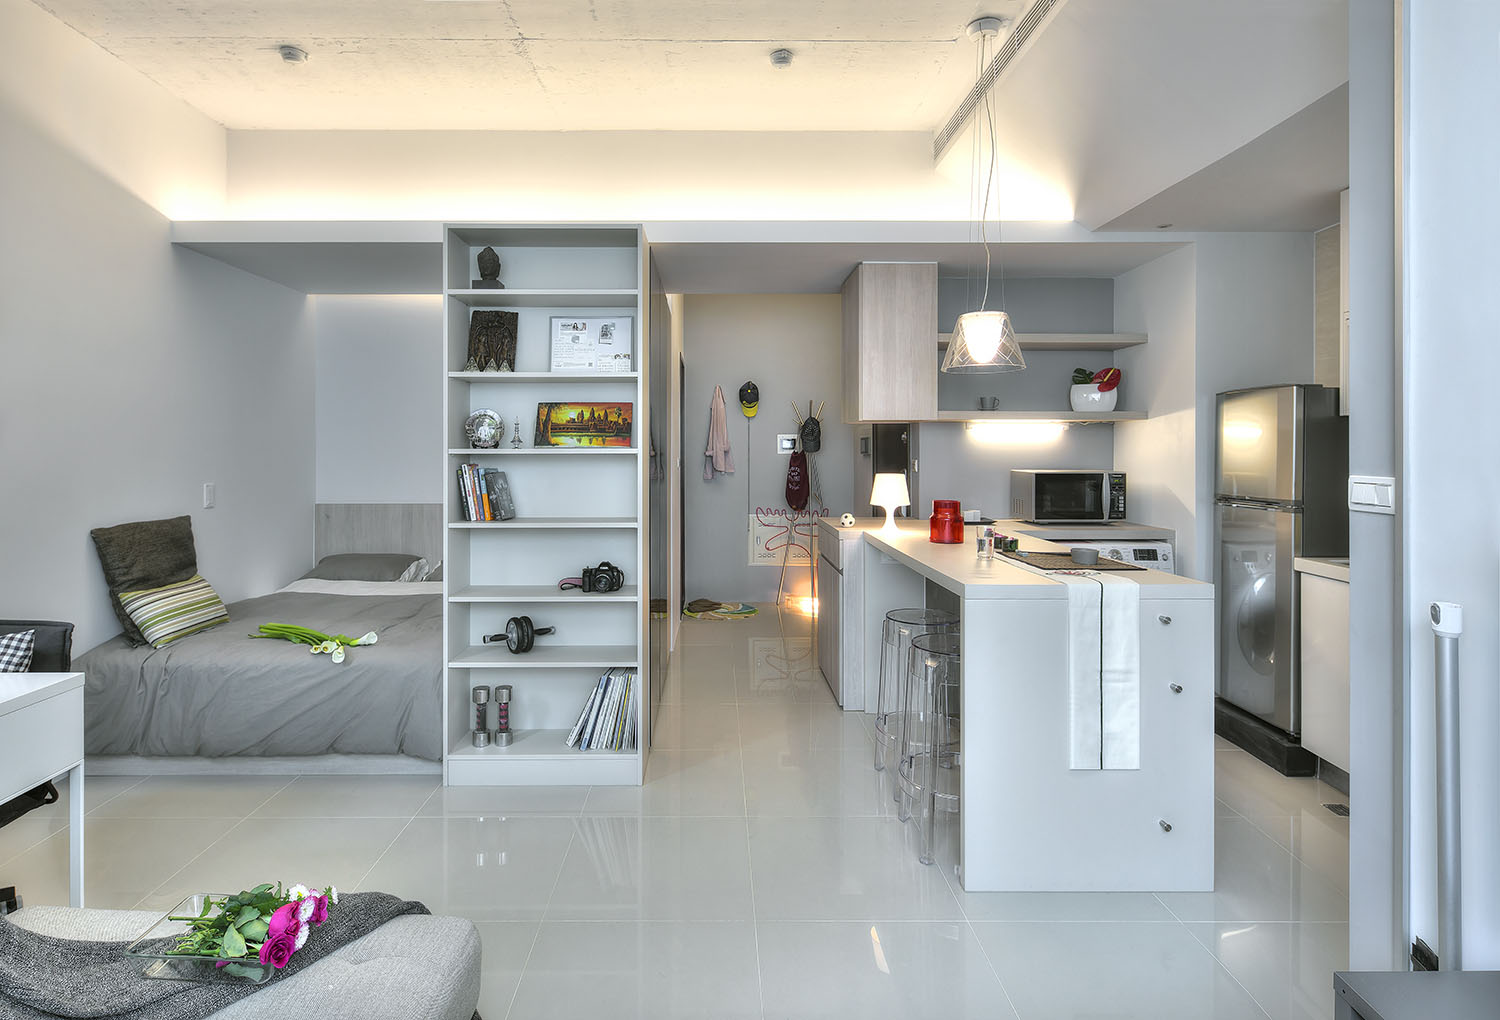 Tiny Modern Studio Apartment Functional Design : studio apartments ideas for interior decoration - www.pureclipart.com